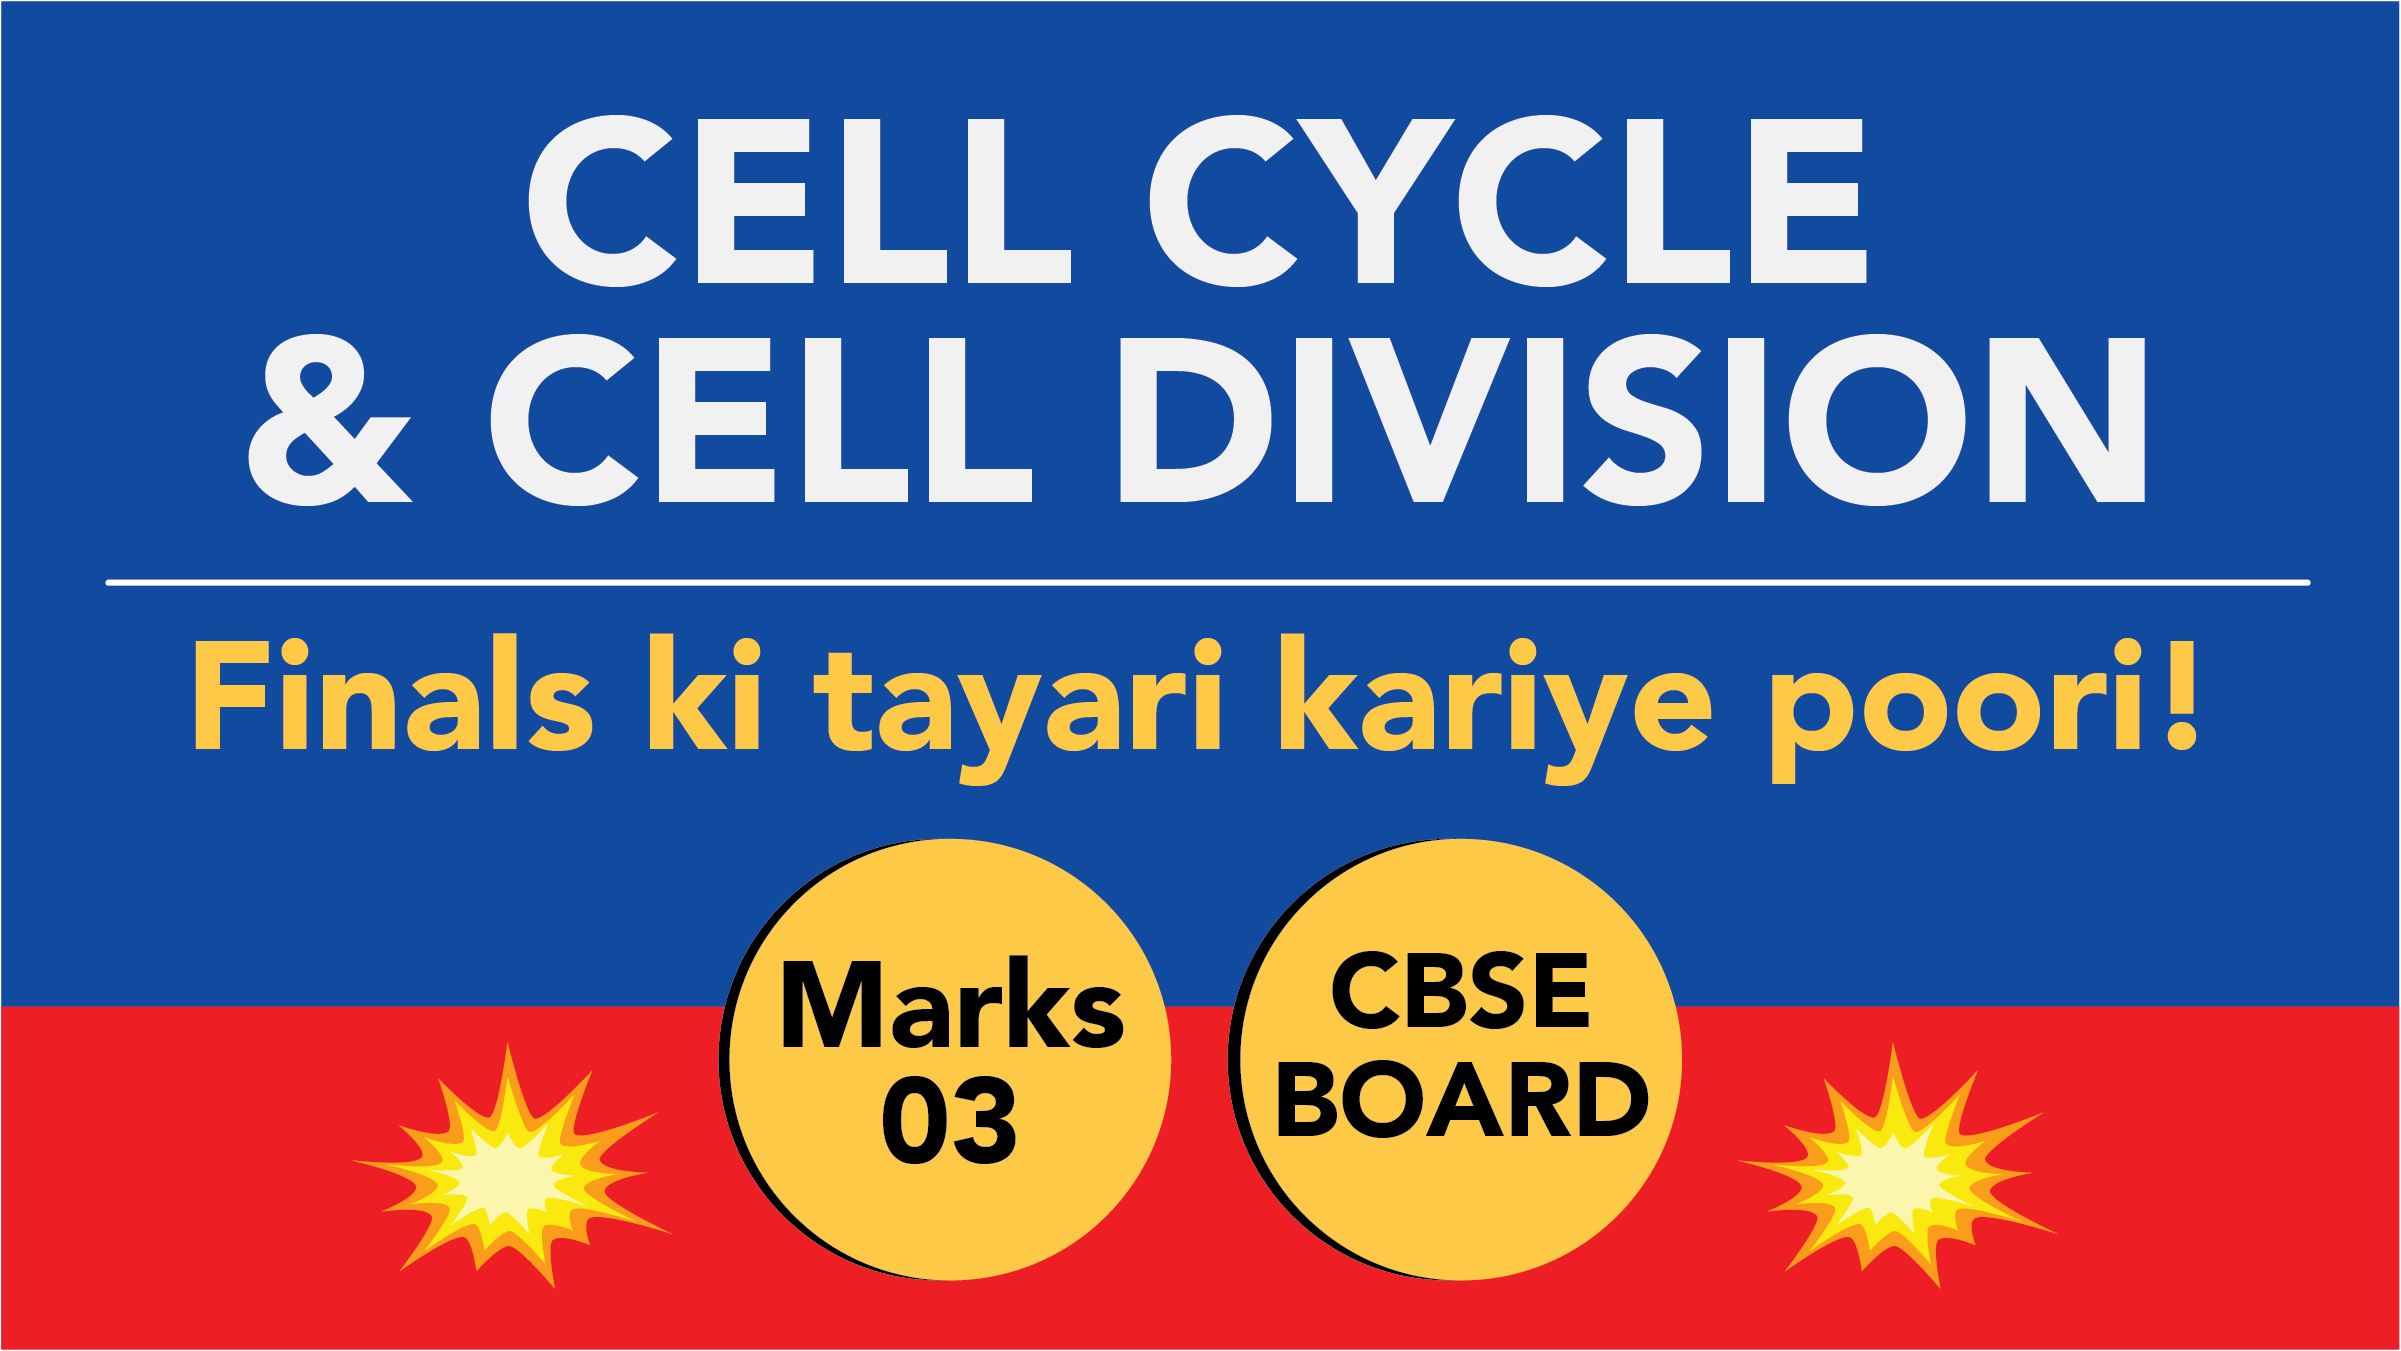 CBSE Board Class 11 CELL CYCLE AND CELL DIVISION    Weightage and Important Topics